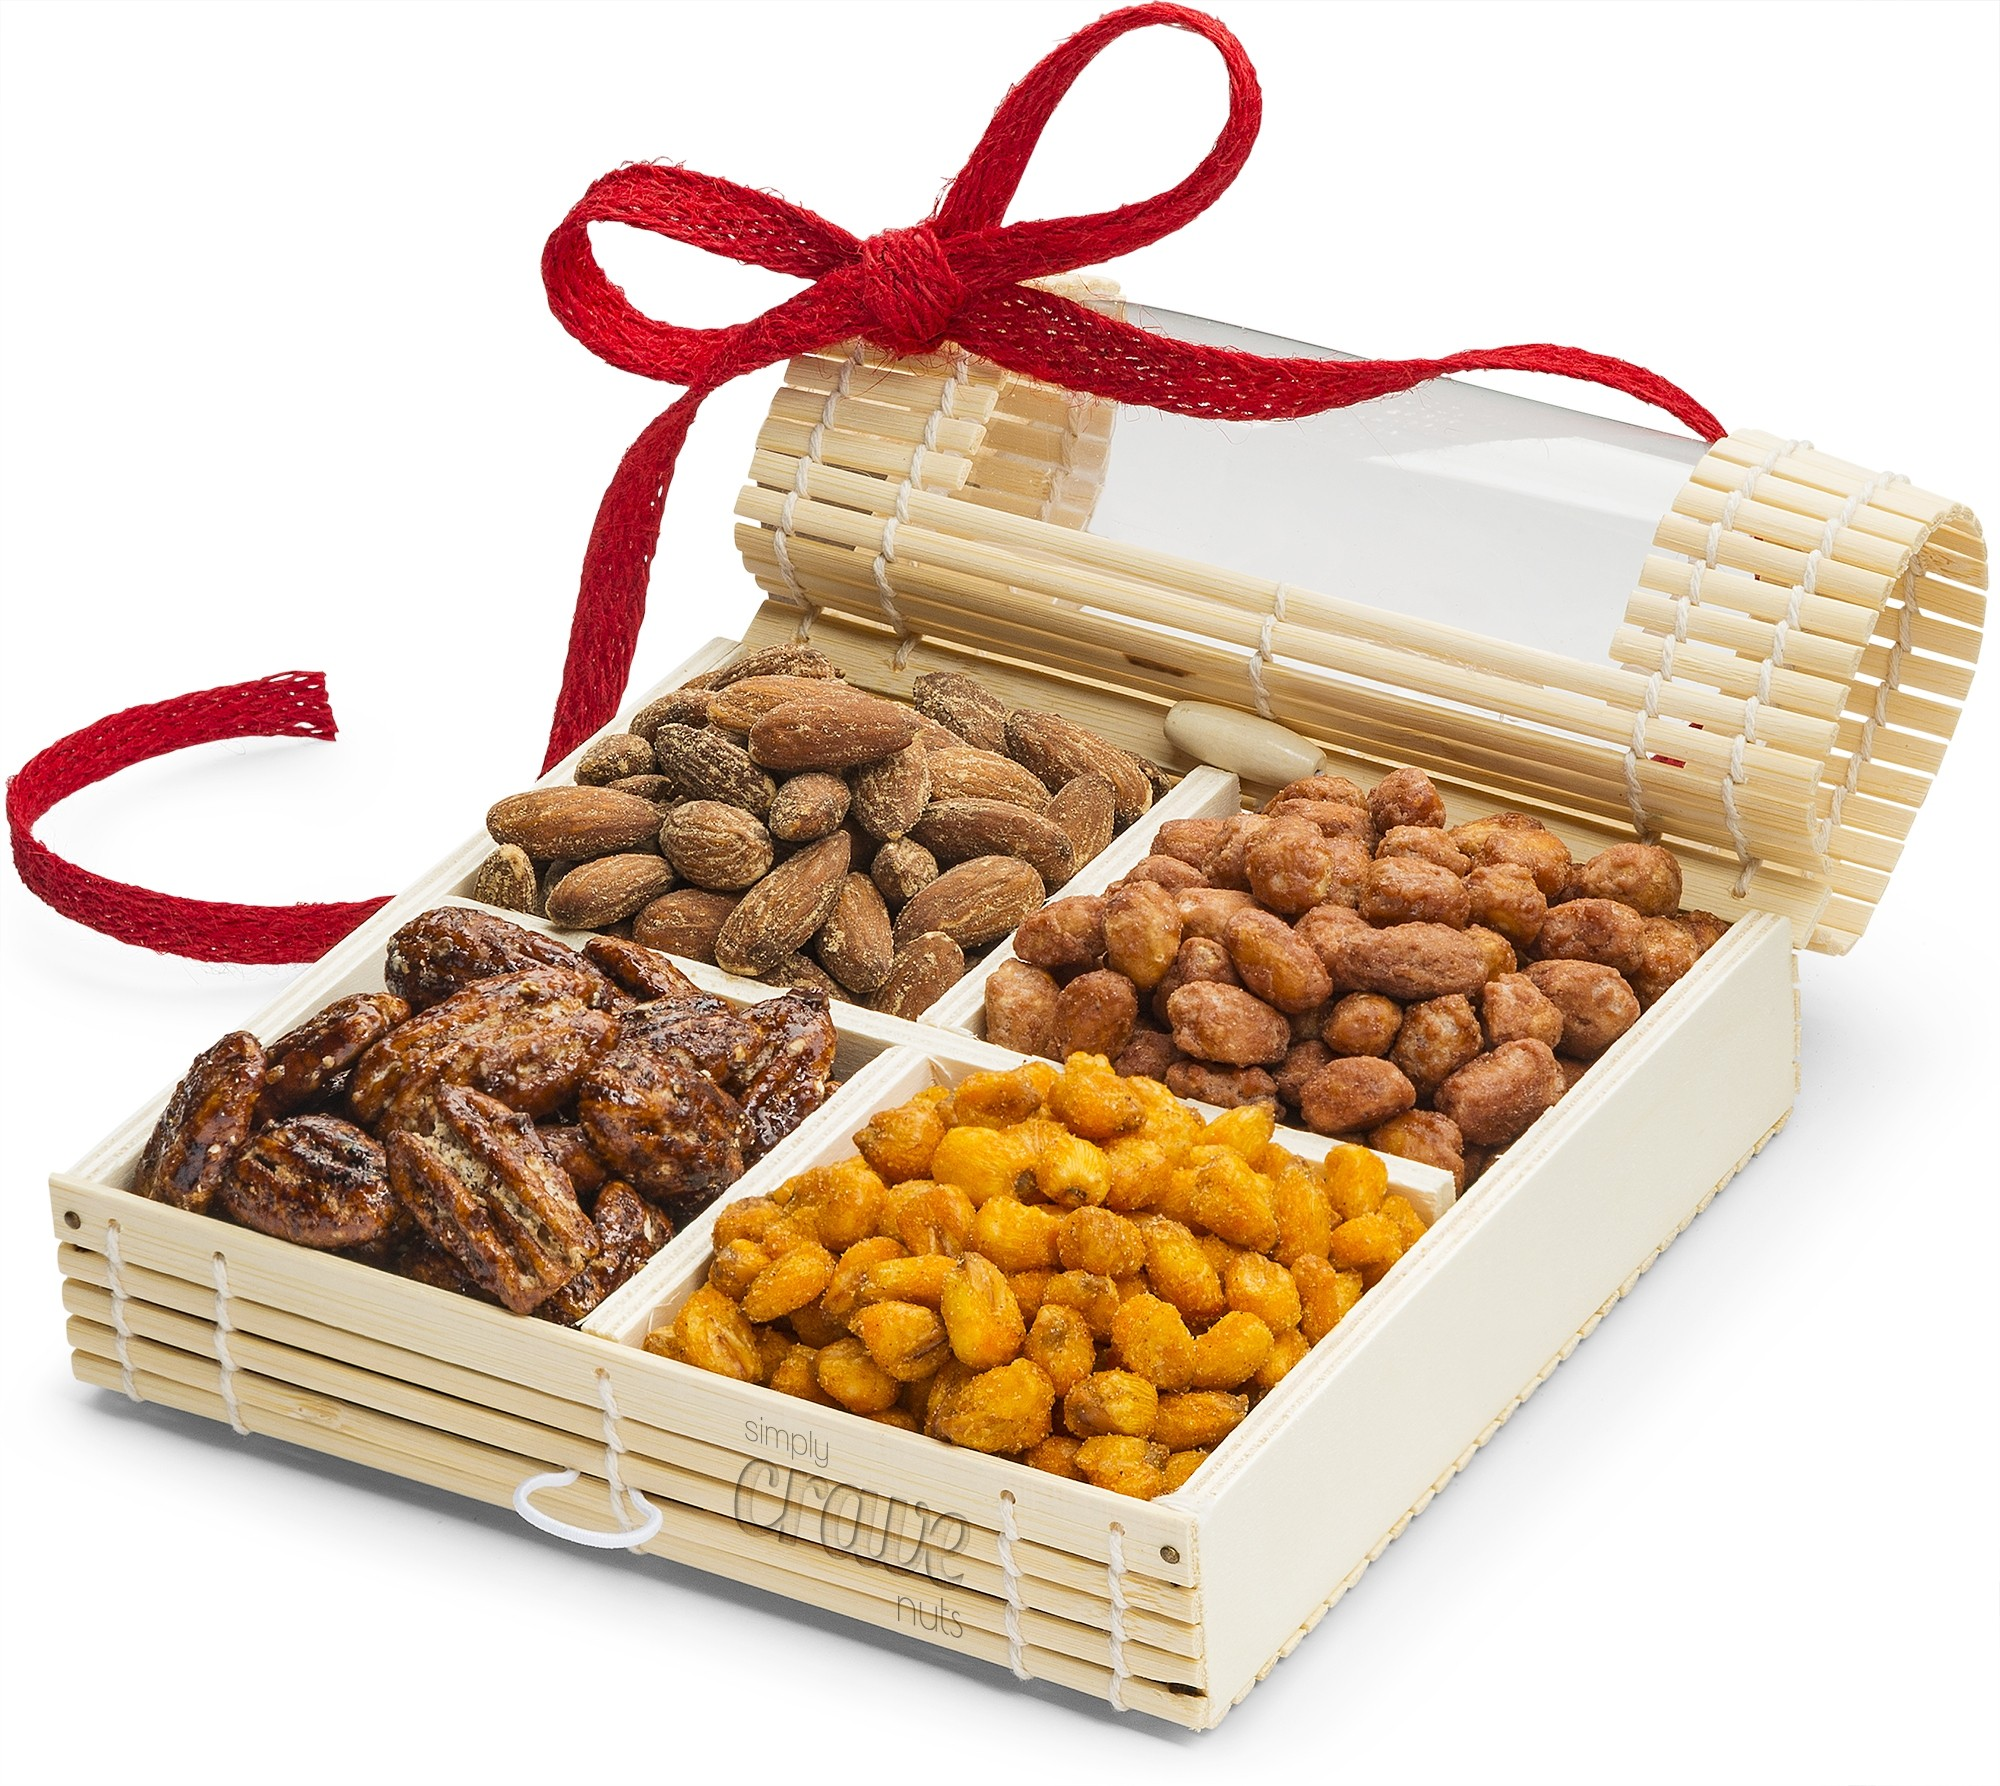 Simply Crave Nut Gifts Holiday, Holiday Gift Tray, Gourmet Food Gift, Nuts Tray Gift Assortment, Holiday (Small)